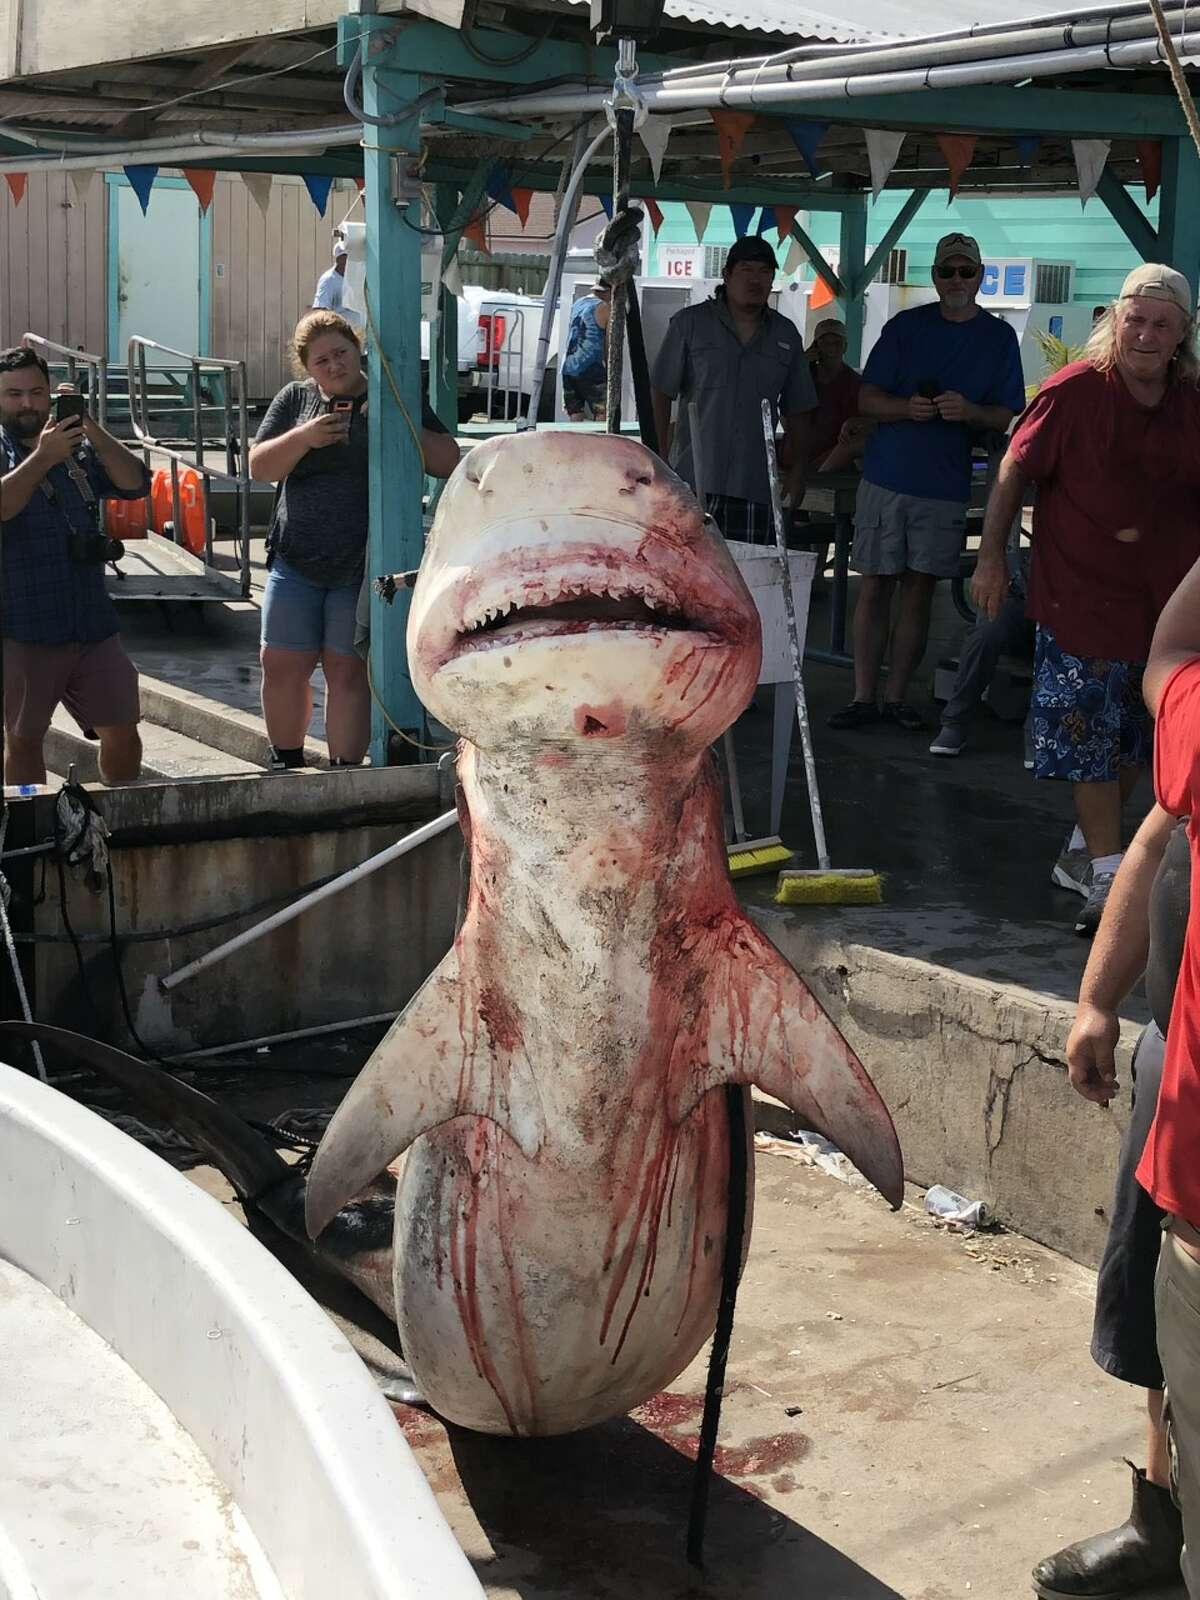 13-year-old Texas boy catches nearly 900-pound shark in Port Aransas during offshore trip: A 13-year-old boy caught an 11-foot, 6-inch, nearly 900-pound tiger shark during a 36-hour offshore trip in Port Aransas on June 15, according to an employee from the charter boating company the teenager was on. Click here to read more.